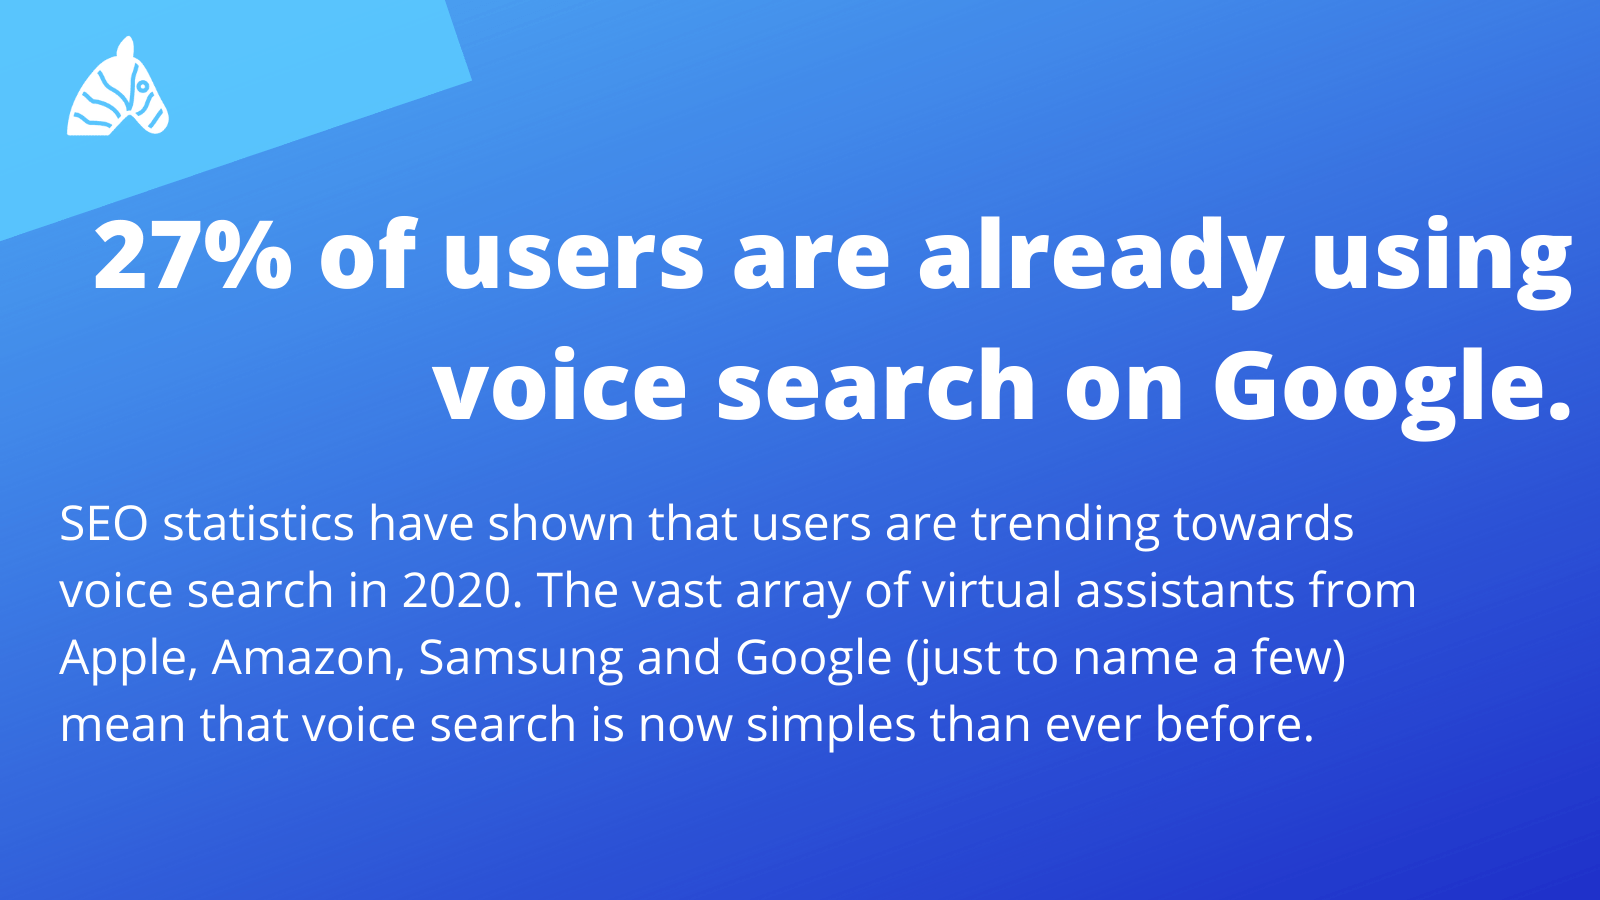 27% of users are already using voice search on Google